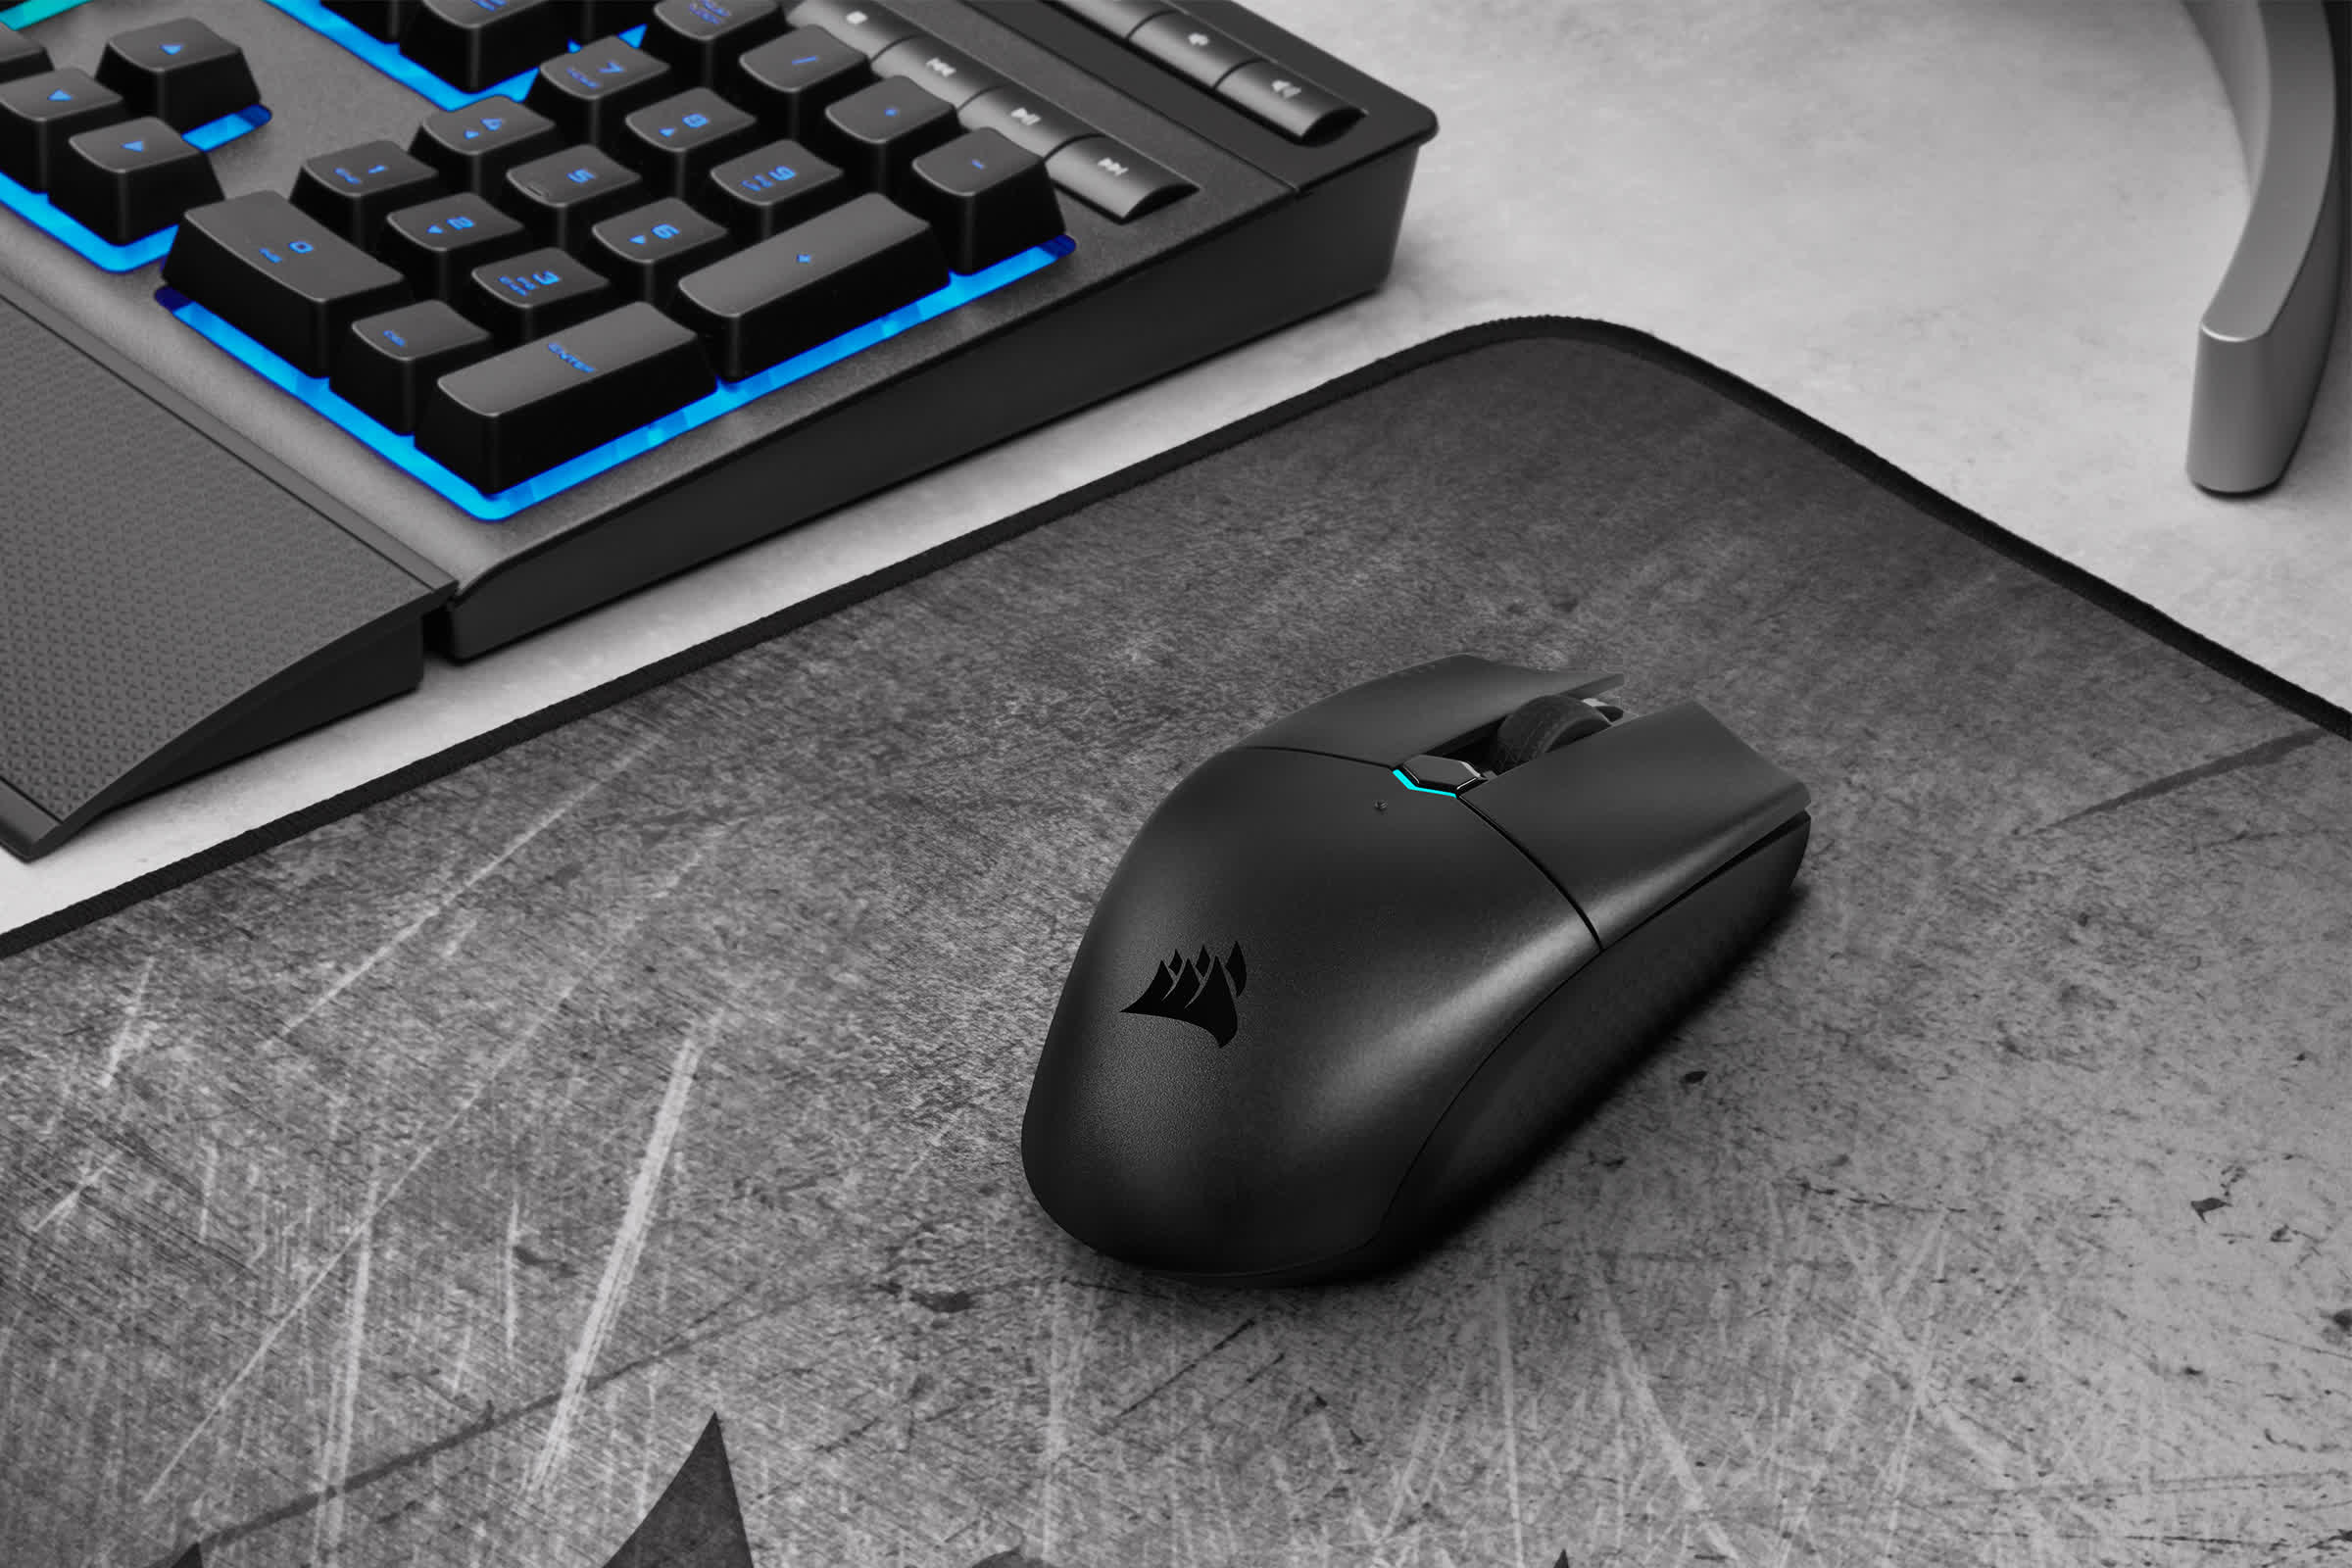 Corsair adds two new entry-level mice to its gaming lineup